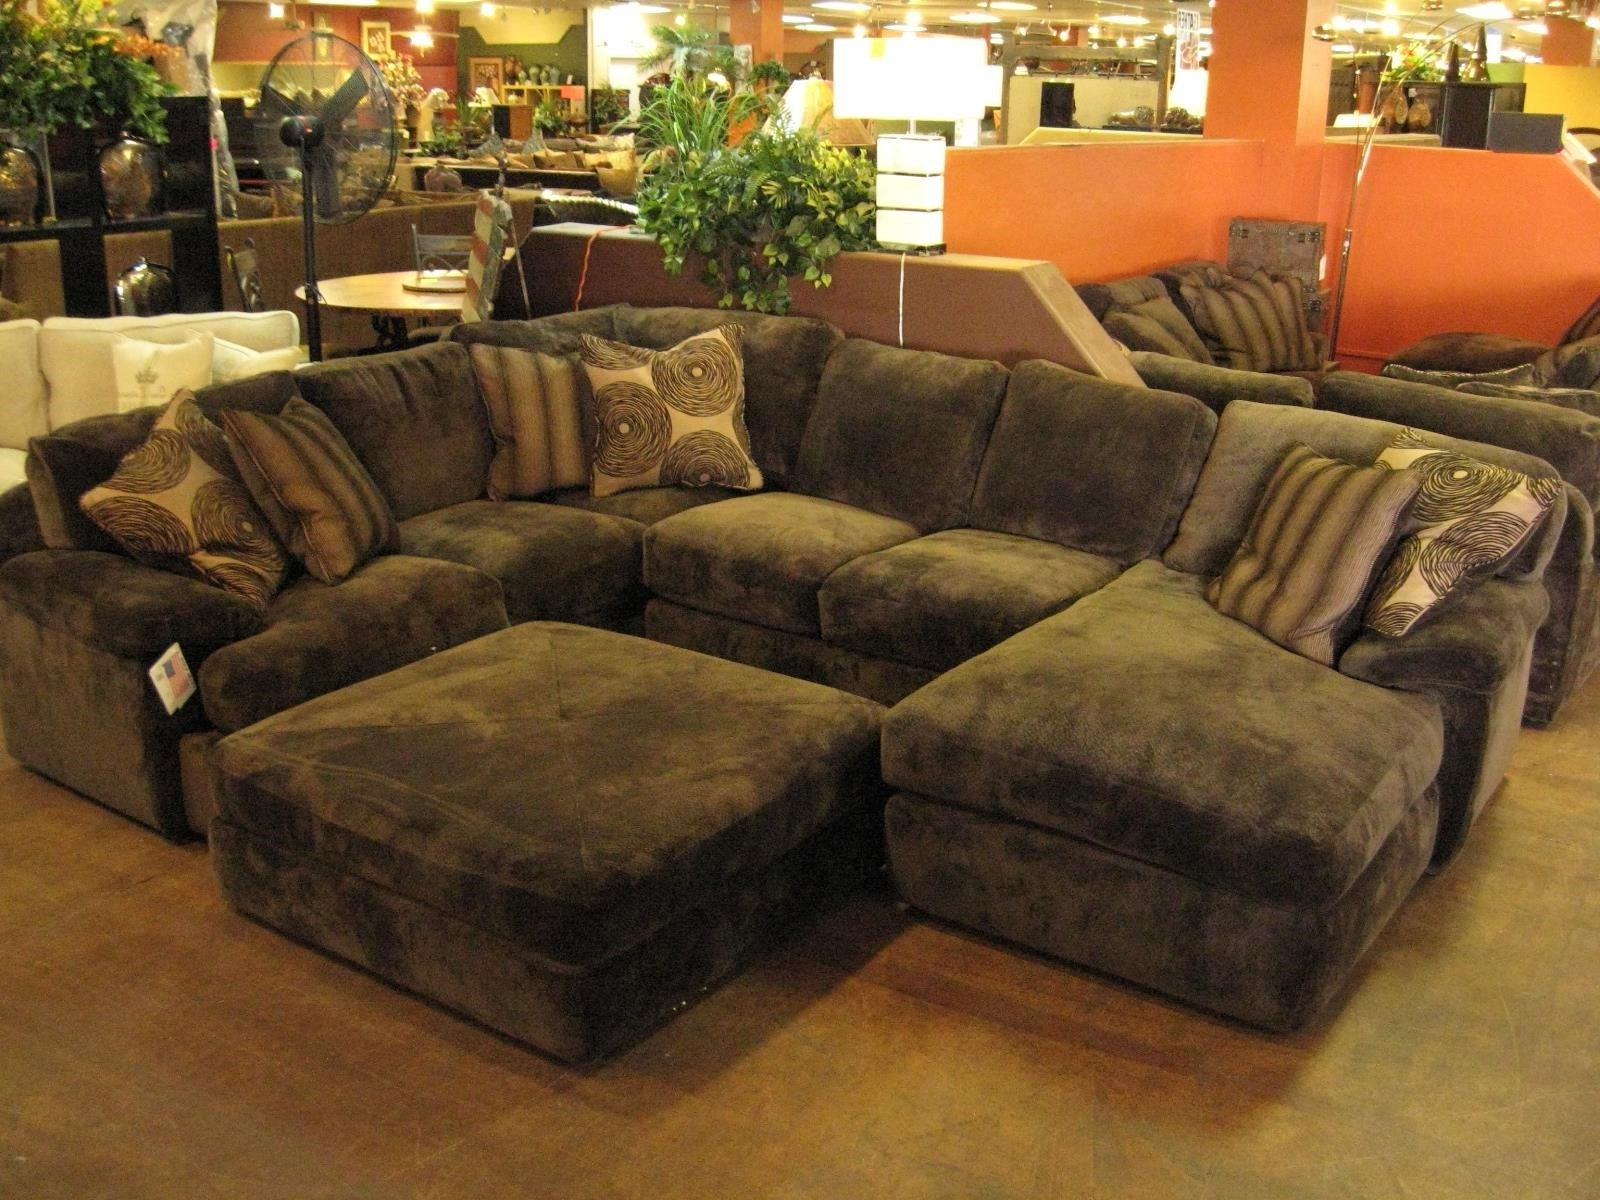 Sectional Sofas Large Sofa With Ottoman Regard To Idea 11 For Sofas With Large Ottoman (View 9 of 10)